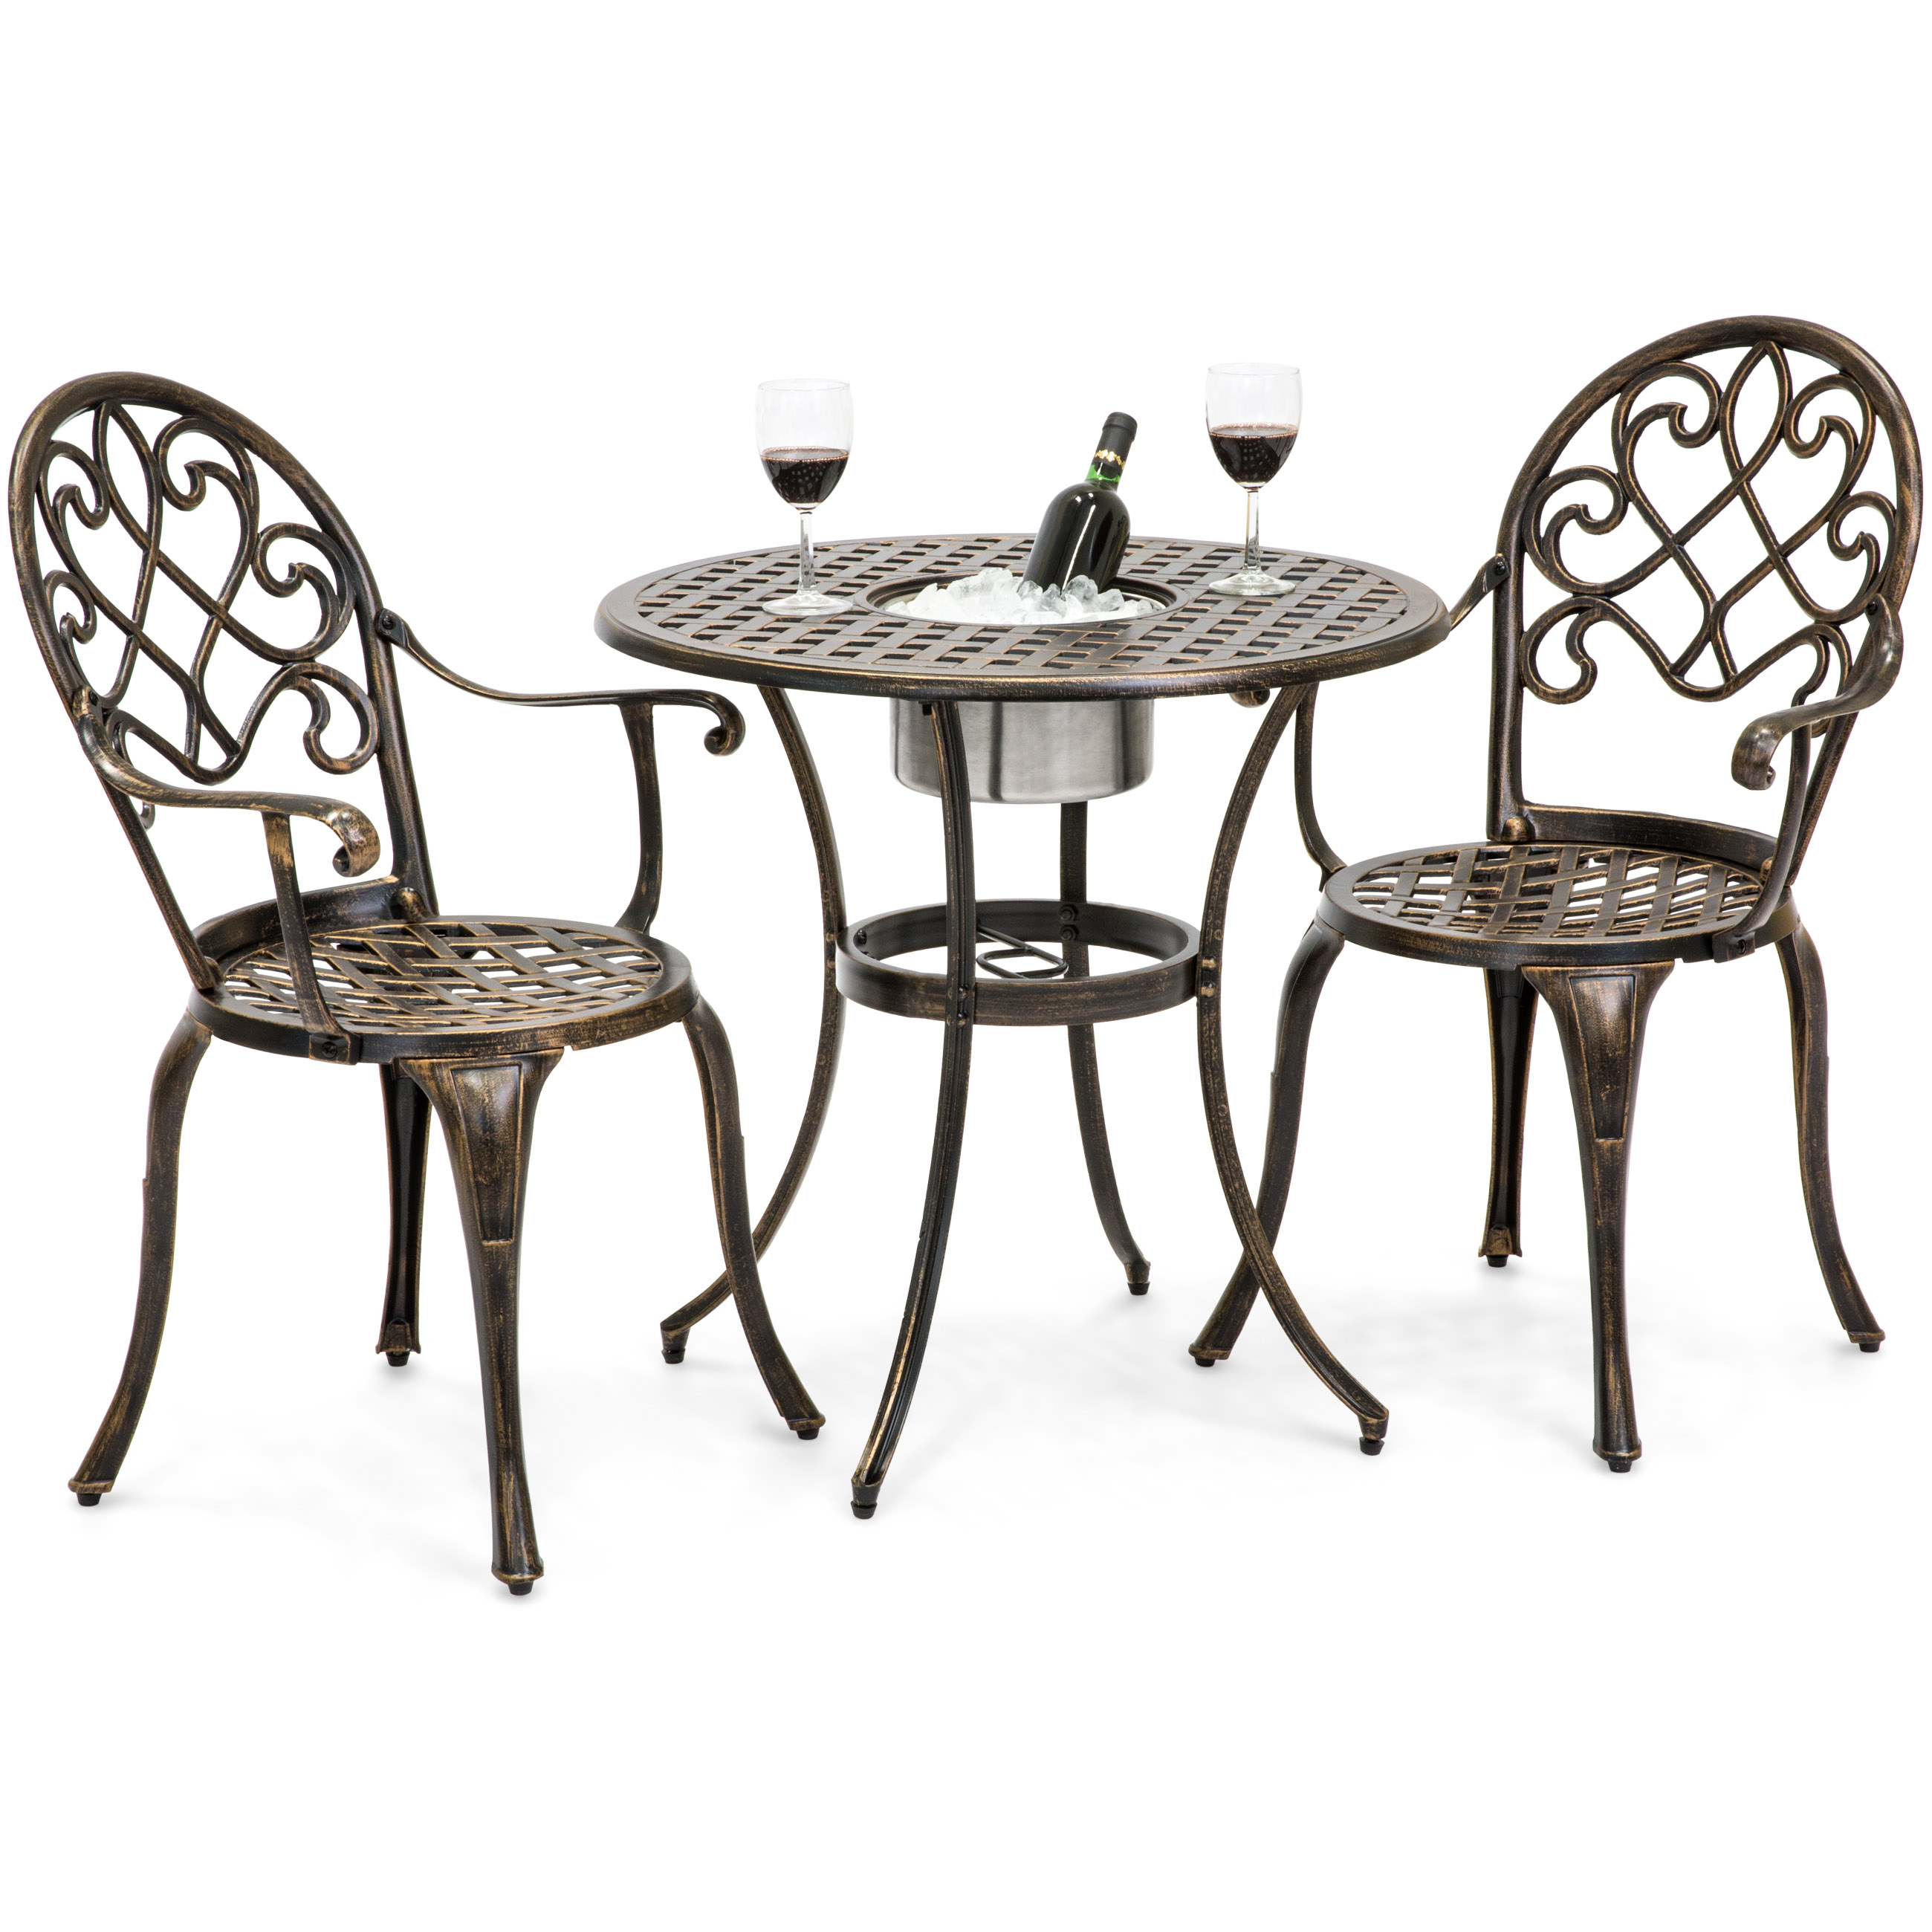 Best Choice Products Cast Aluminum Patio Bistro Table Set w/ Attached Ice Bucket, 2 Chairs - Copper